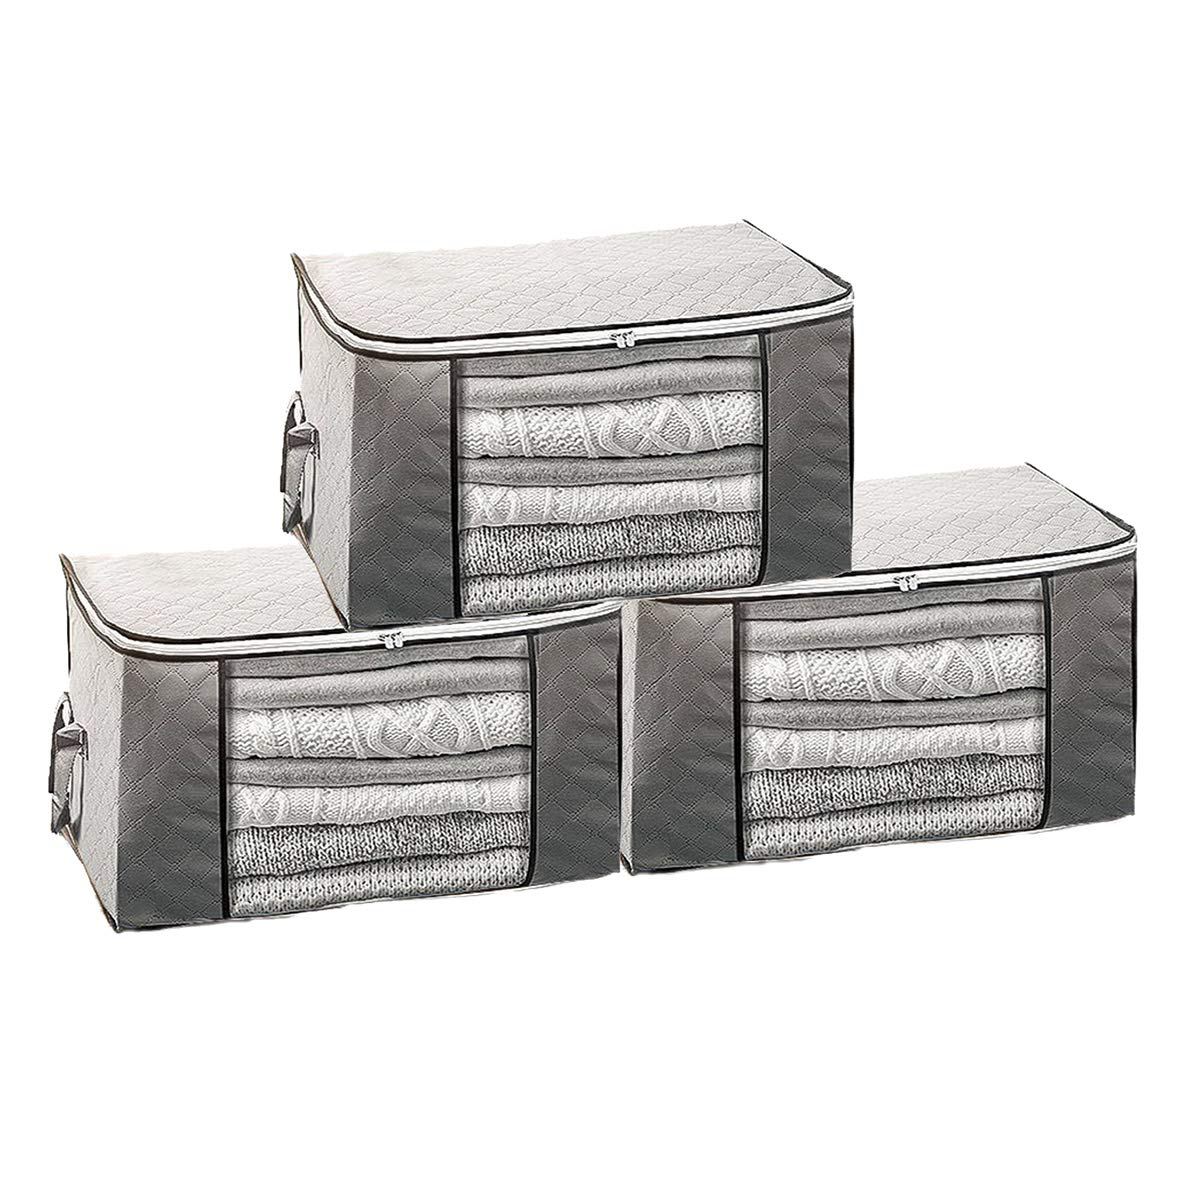 VAKADO Foldable Comforter Storage Bag Organizers Containers Clear Window & Carry Handles Blankets, Clothes, Bedding, Closets, Under Bed (3 Pack, Grey)